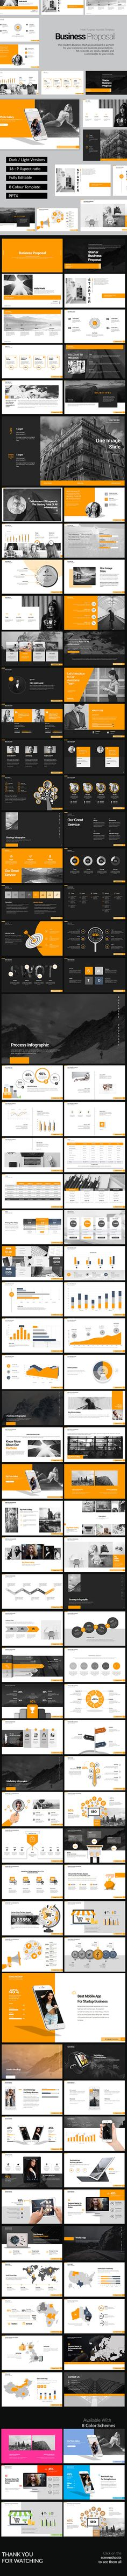 Business Proposal PowerPoint Template Business Proposal PowerPoint